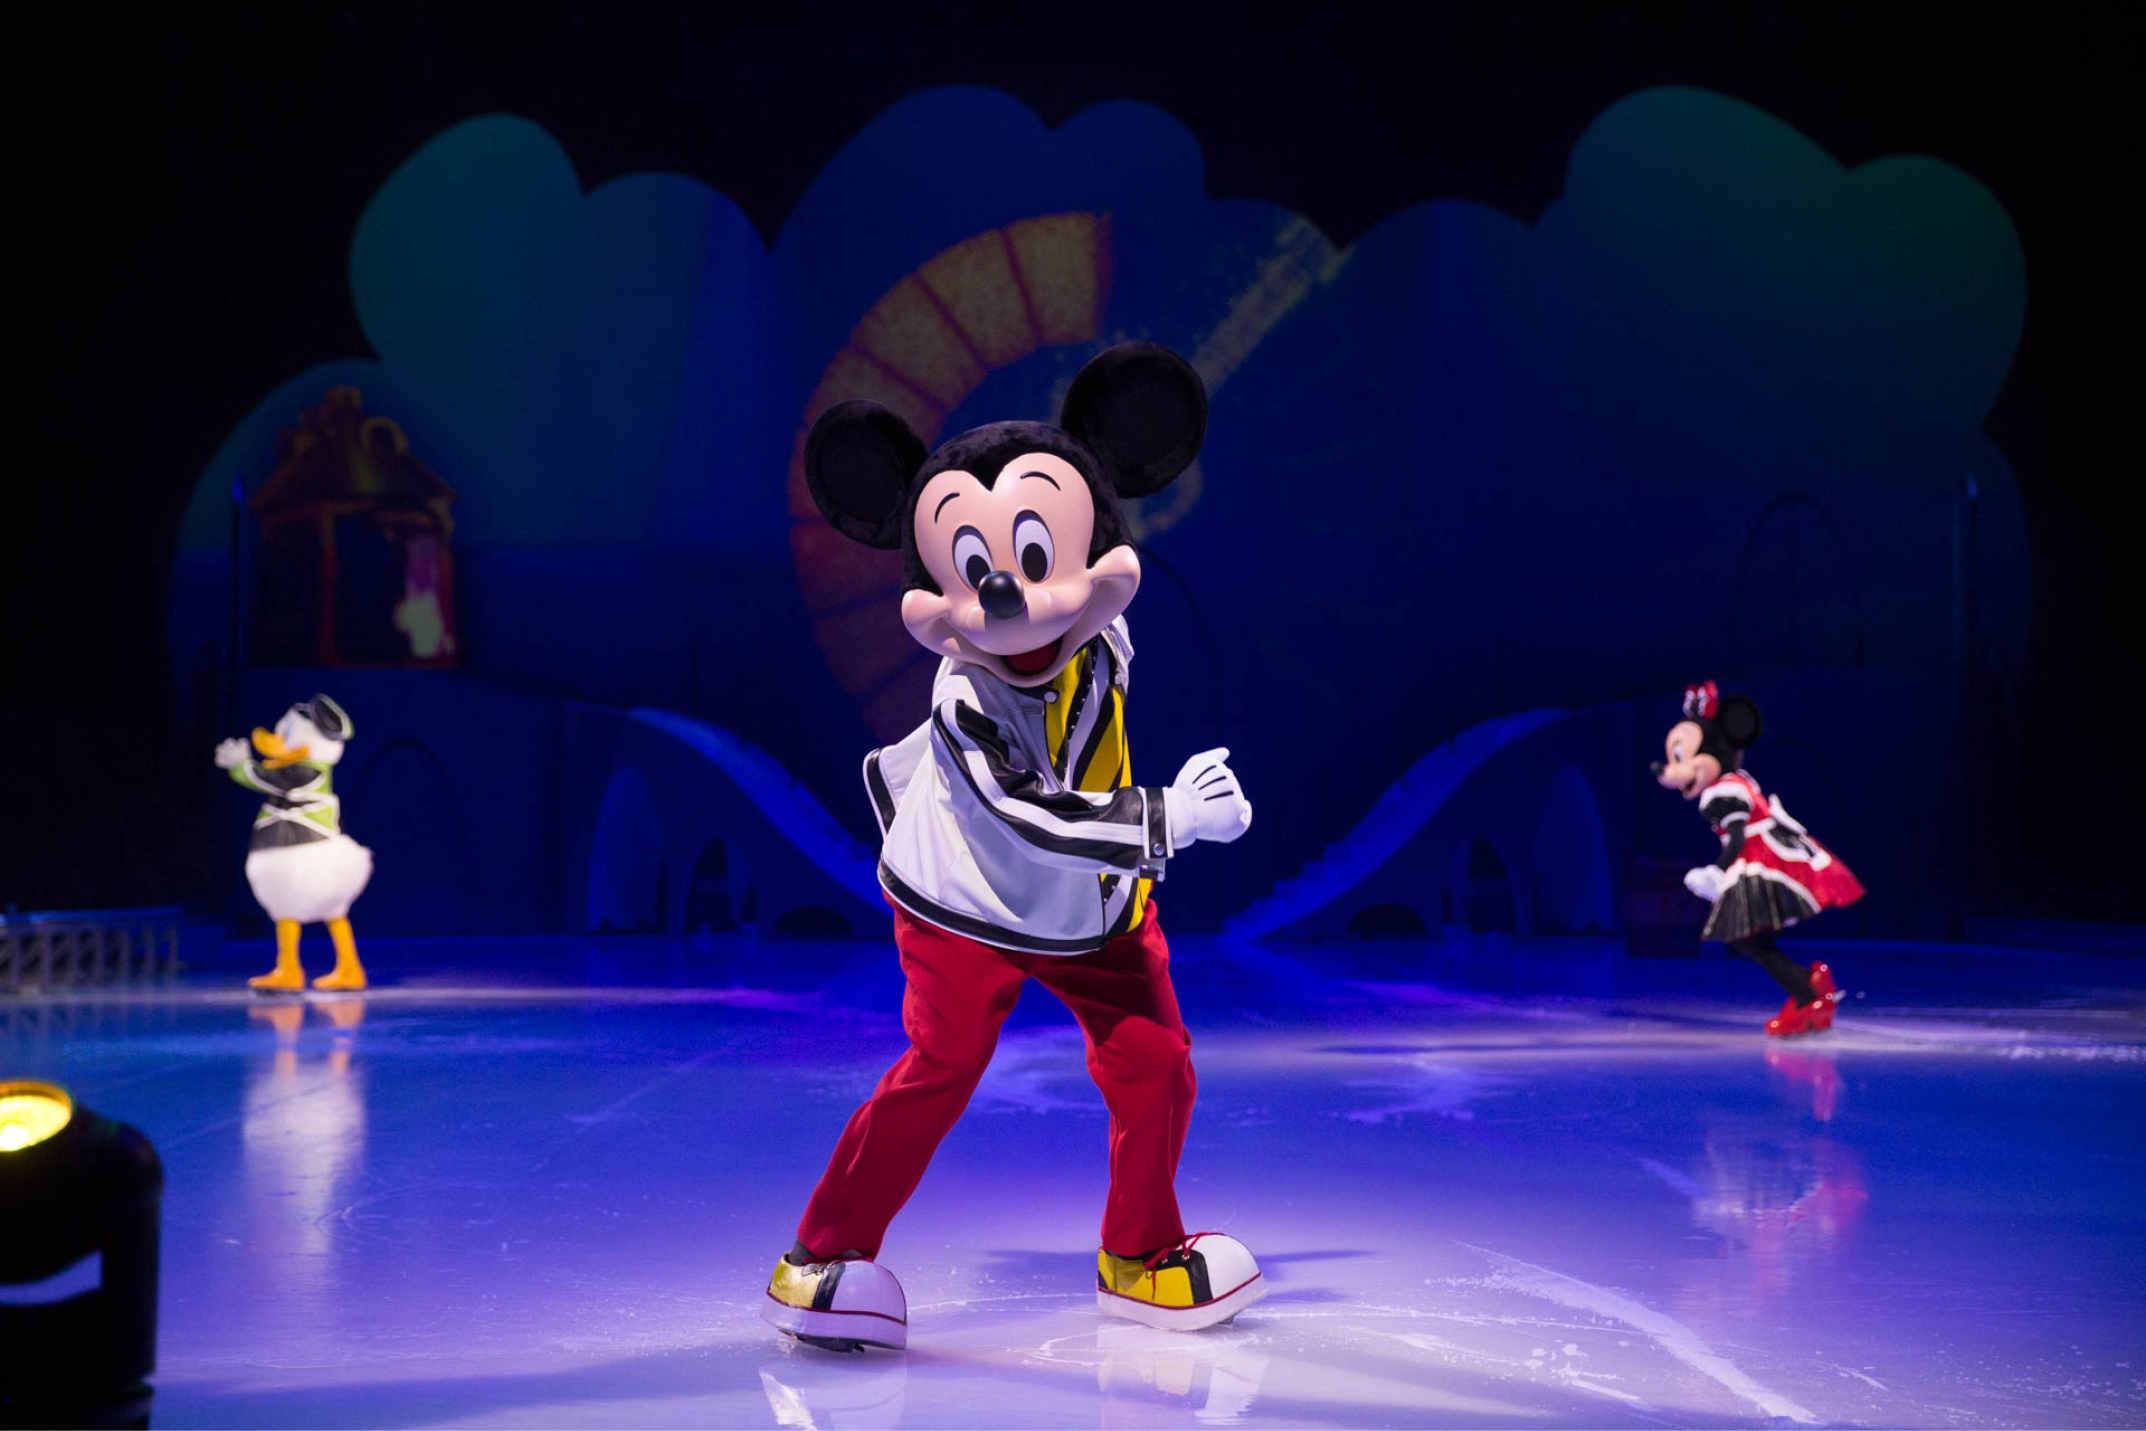 Mickey Mouse skating on ice